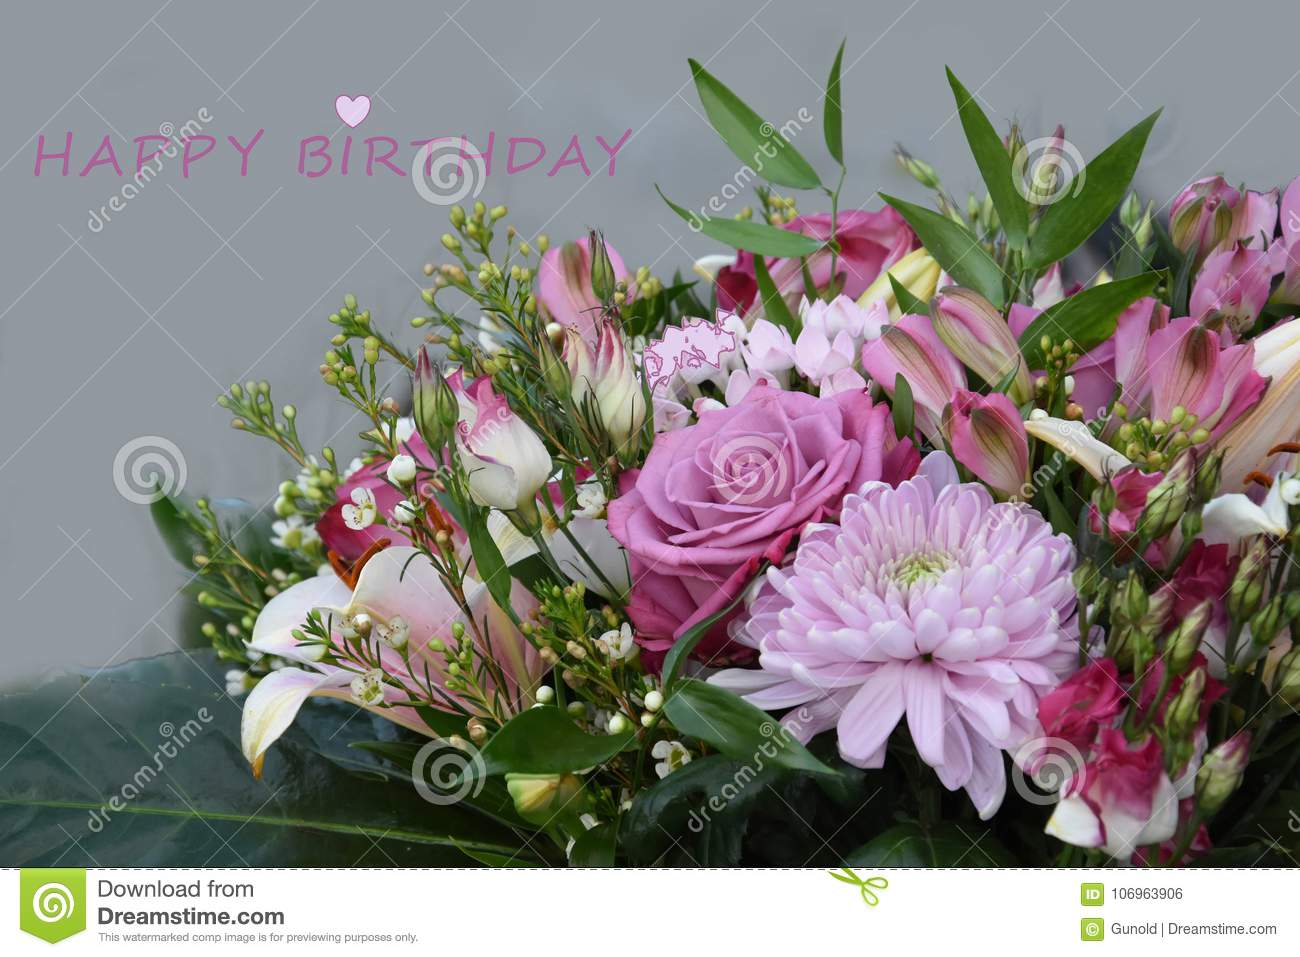 Birthday Greeting Card With A Bouquet Of Rose And White Flowers